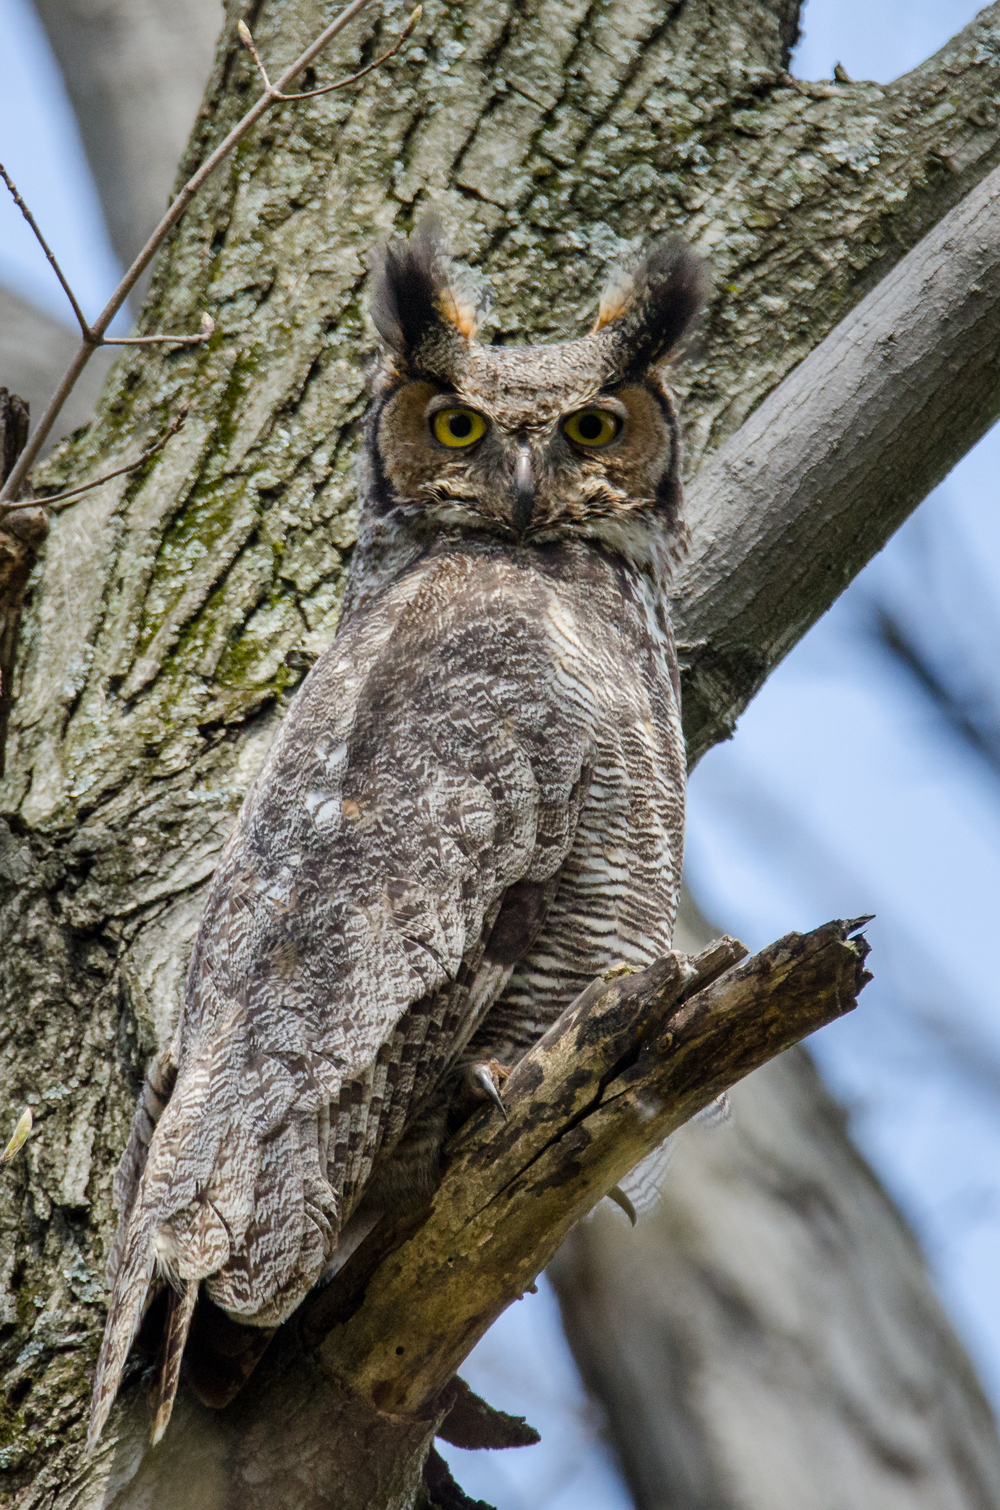 Male  Great Horned Owl  Nikon D7000 ISO 800 550mm f/10 1/640 sec